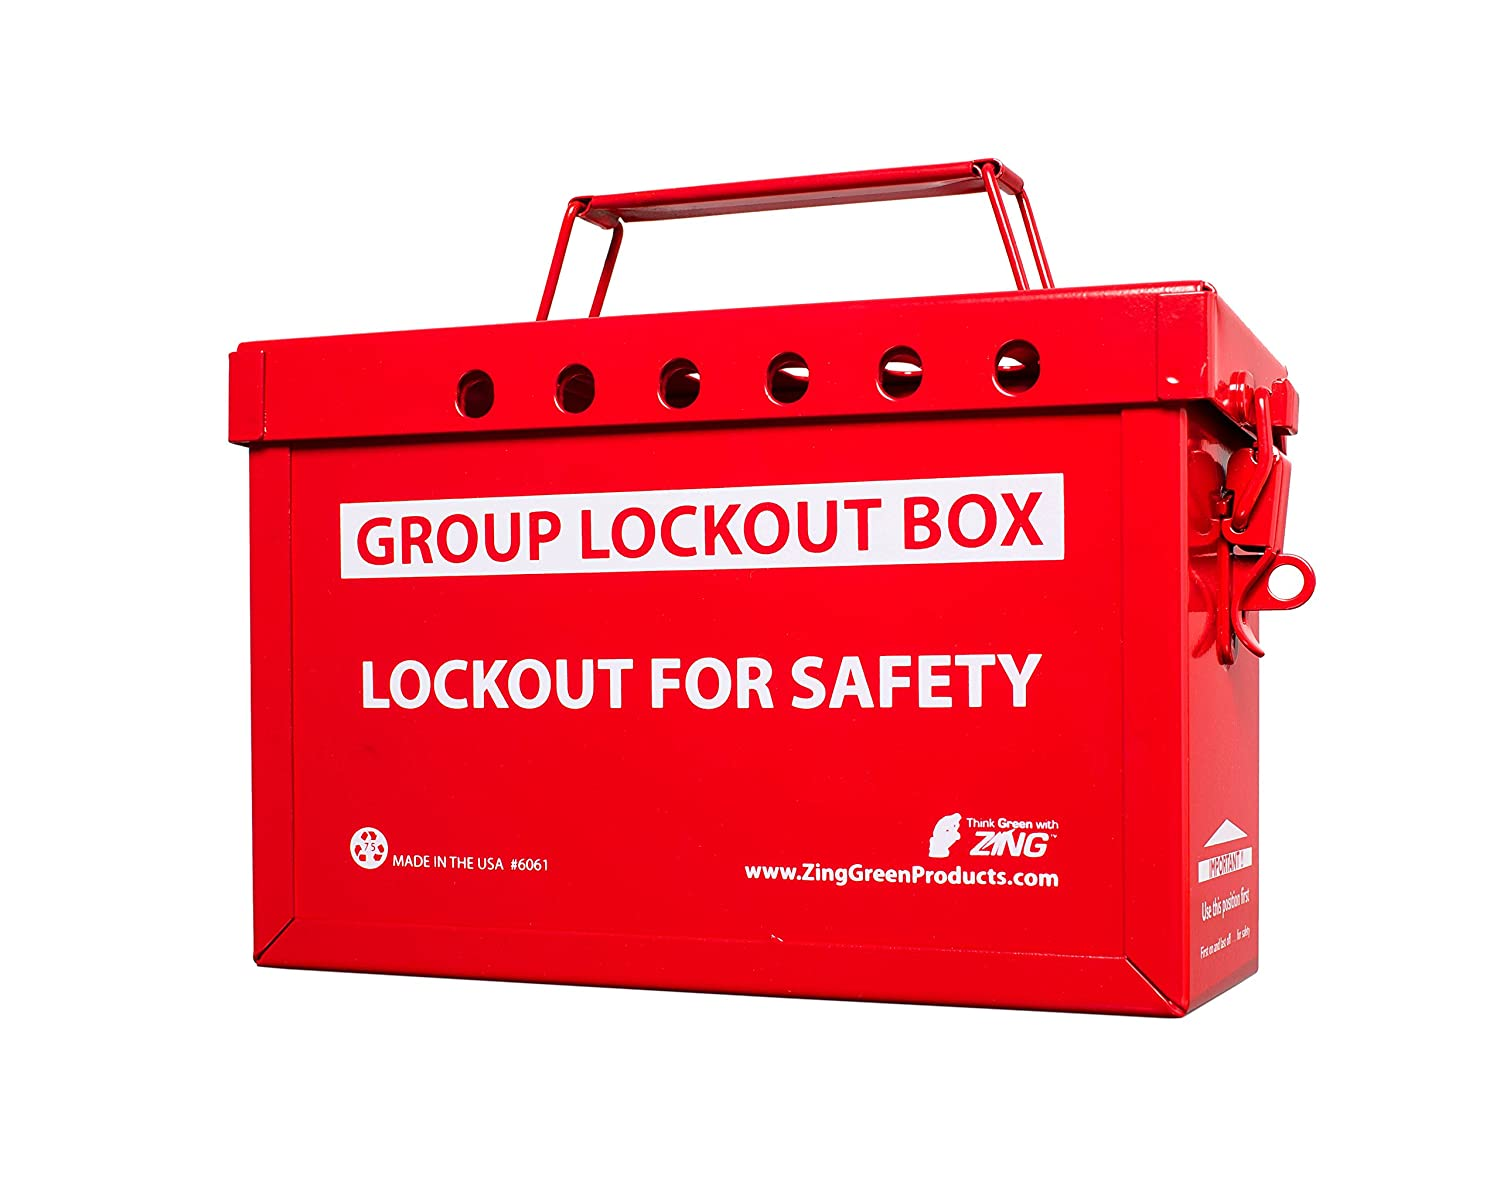 Zing Green Ranking TOP20 Products 6061R RecycLockout Red Box 40% OFF Cheap Sale Lockout Group